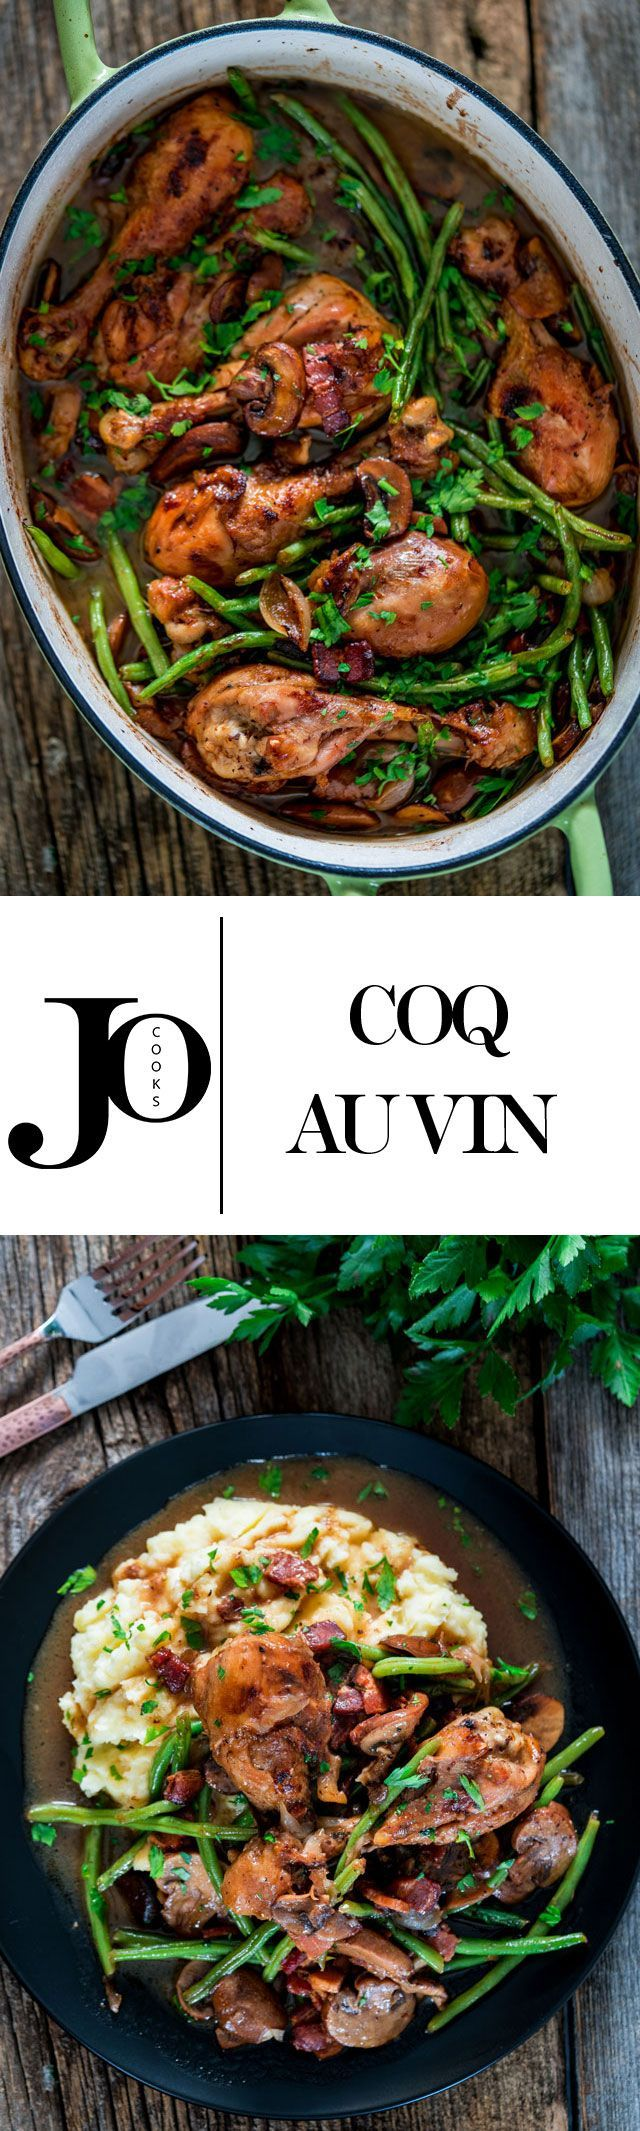 90632 best amazing recipes from amazing food bloggers images on coq au vin with mashed potatoes this french dish is made with chicken braised forumfinder Image collections